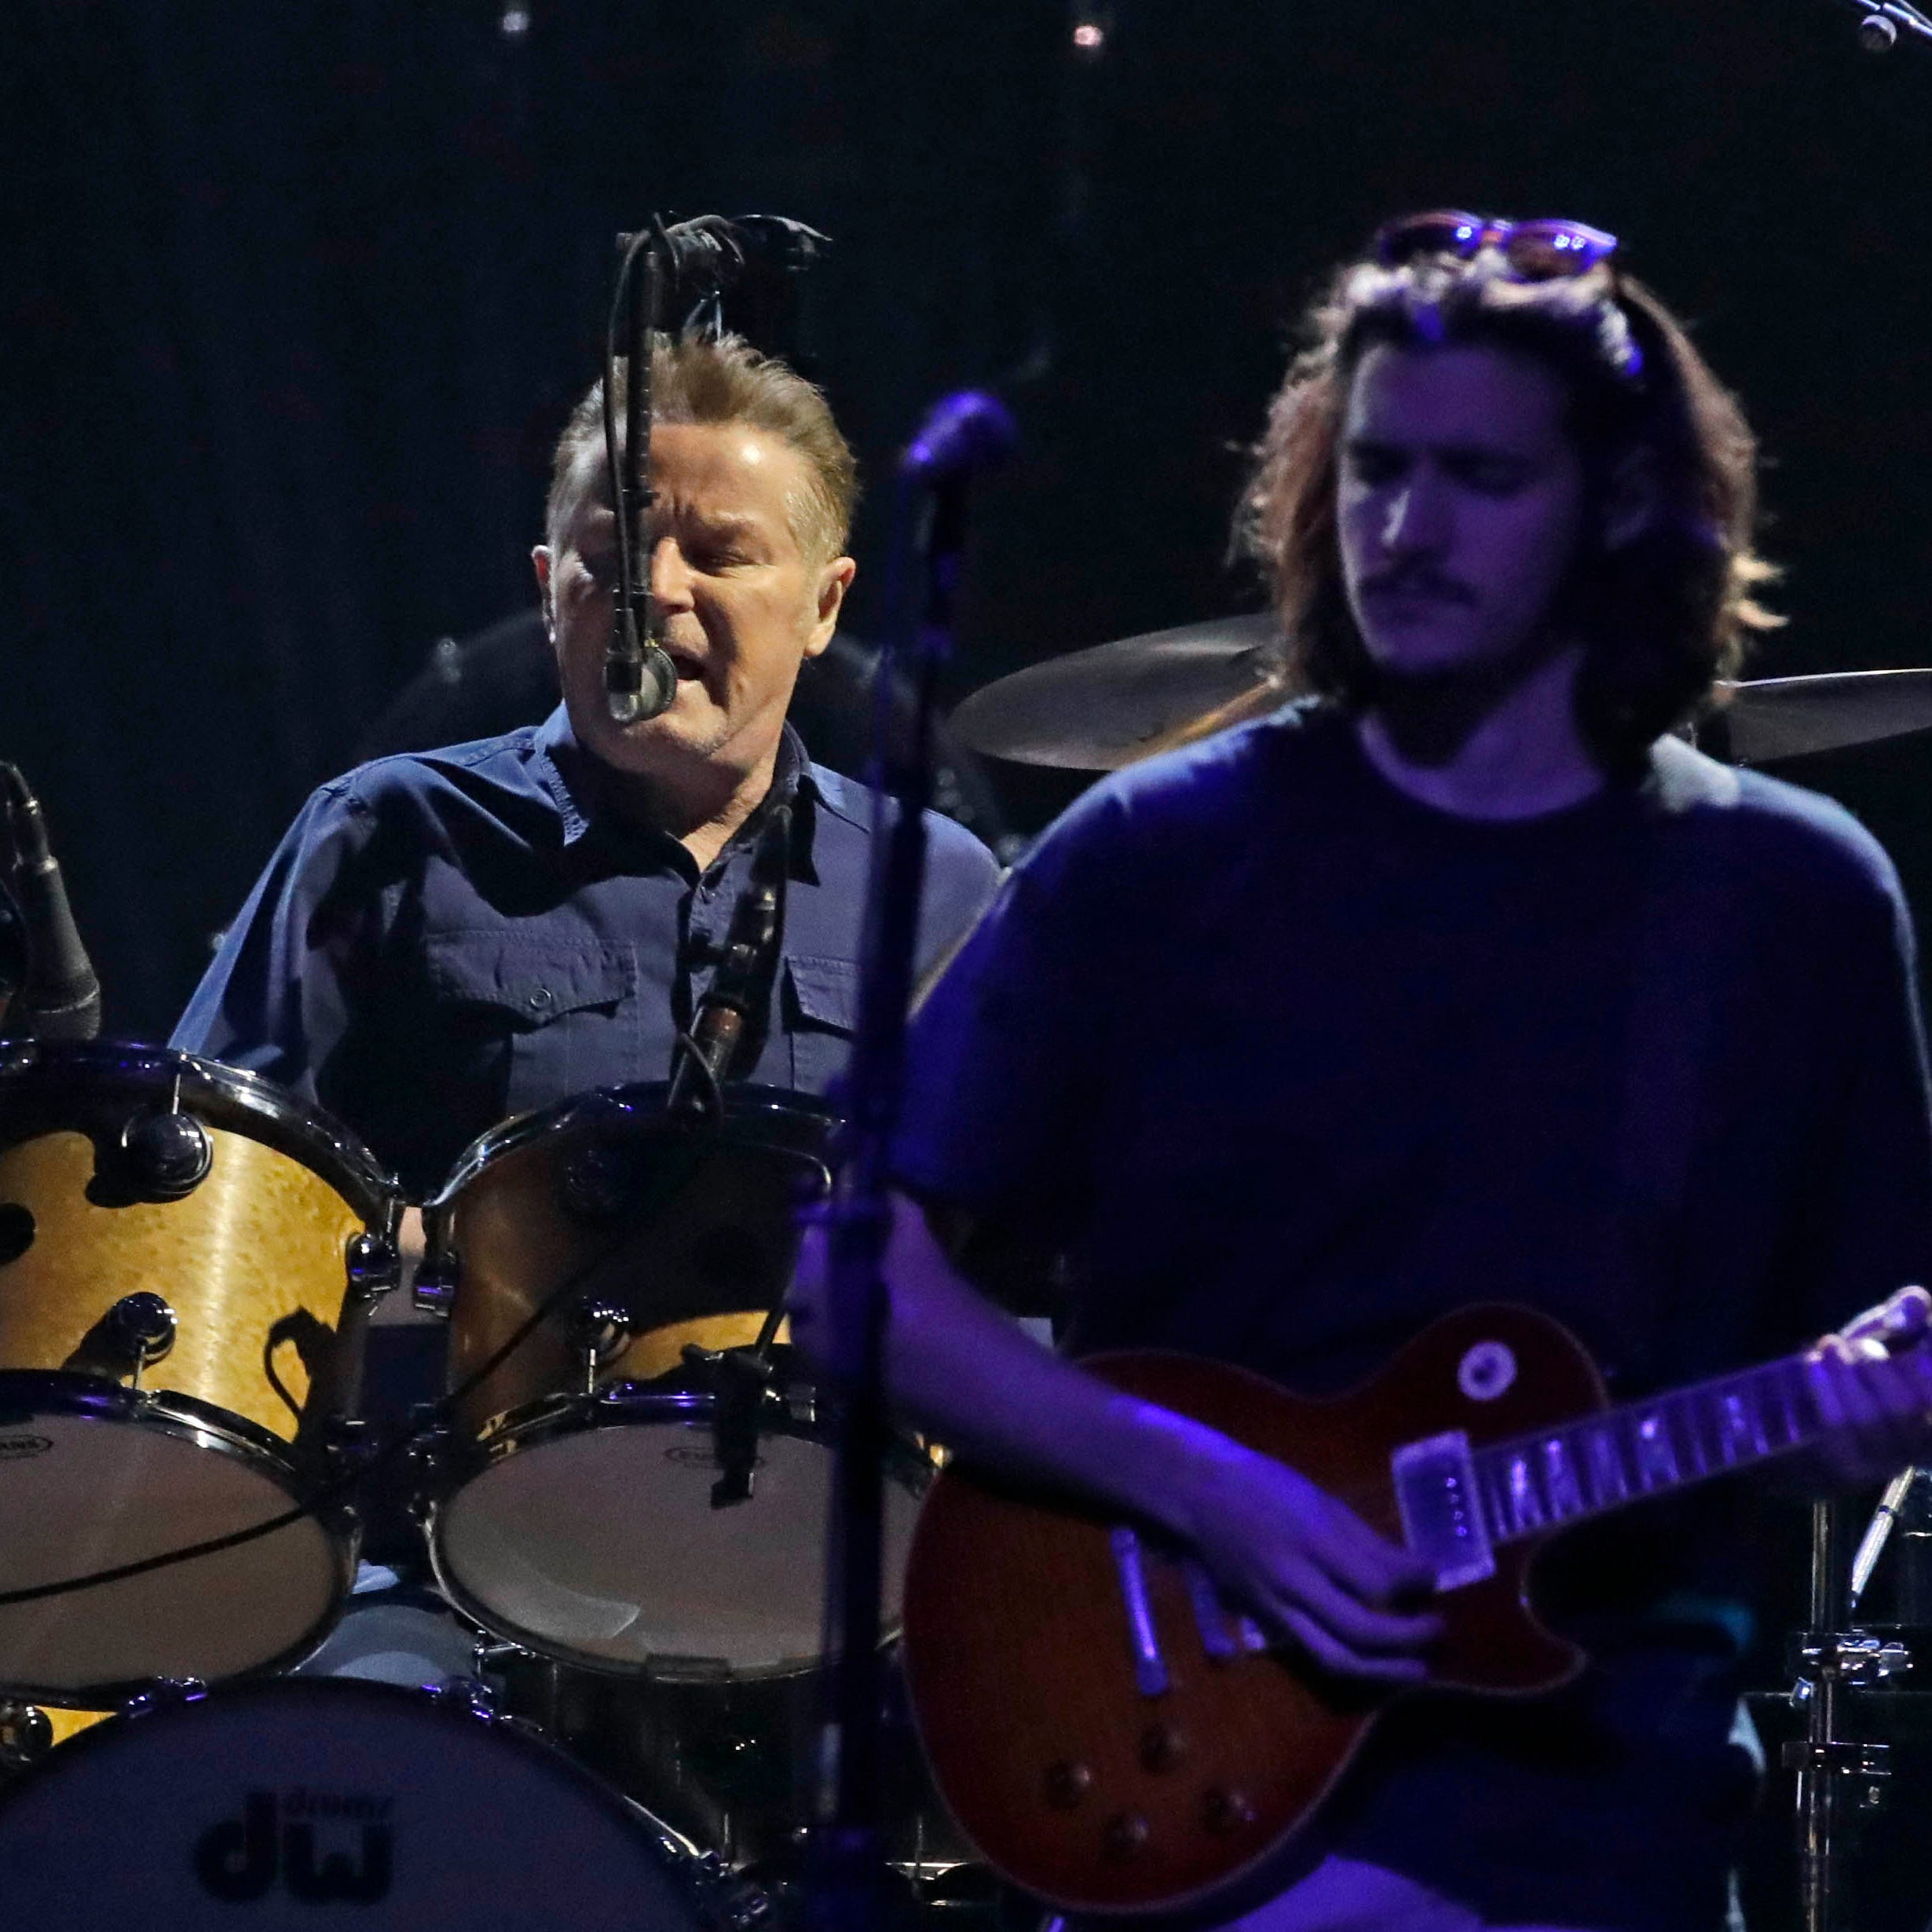 With Glenn Frey's son and Vince Gill, the Eagles soar at Fiserv Forum in Milwaukee